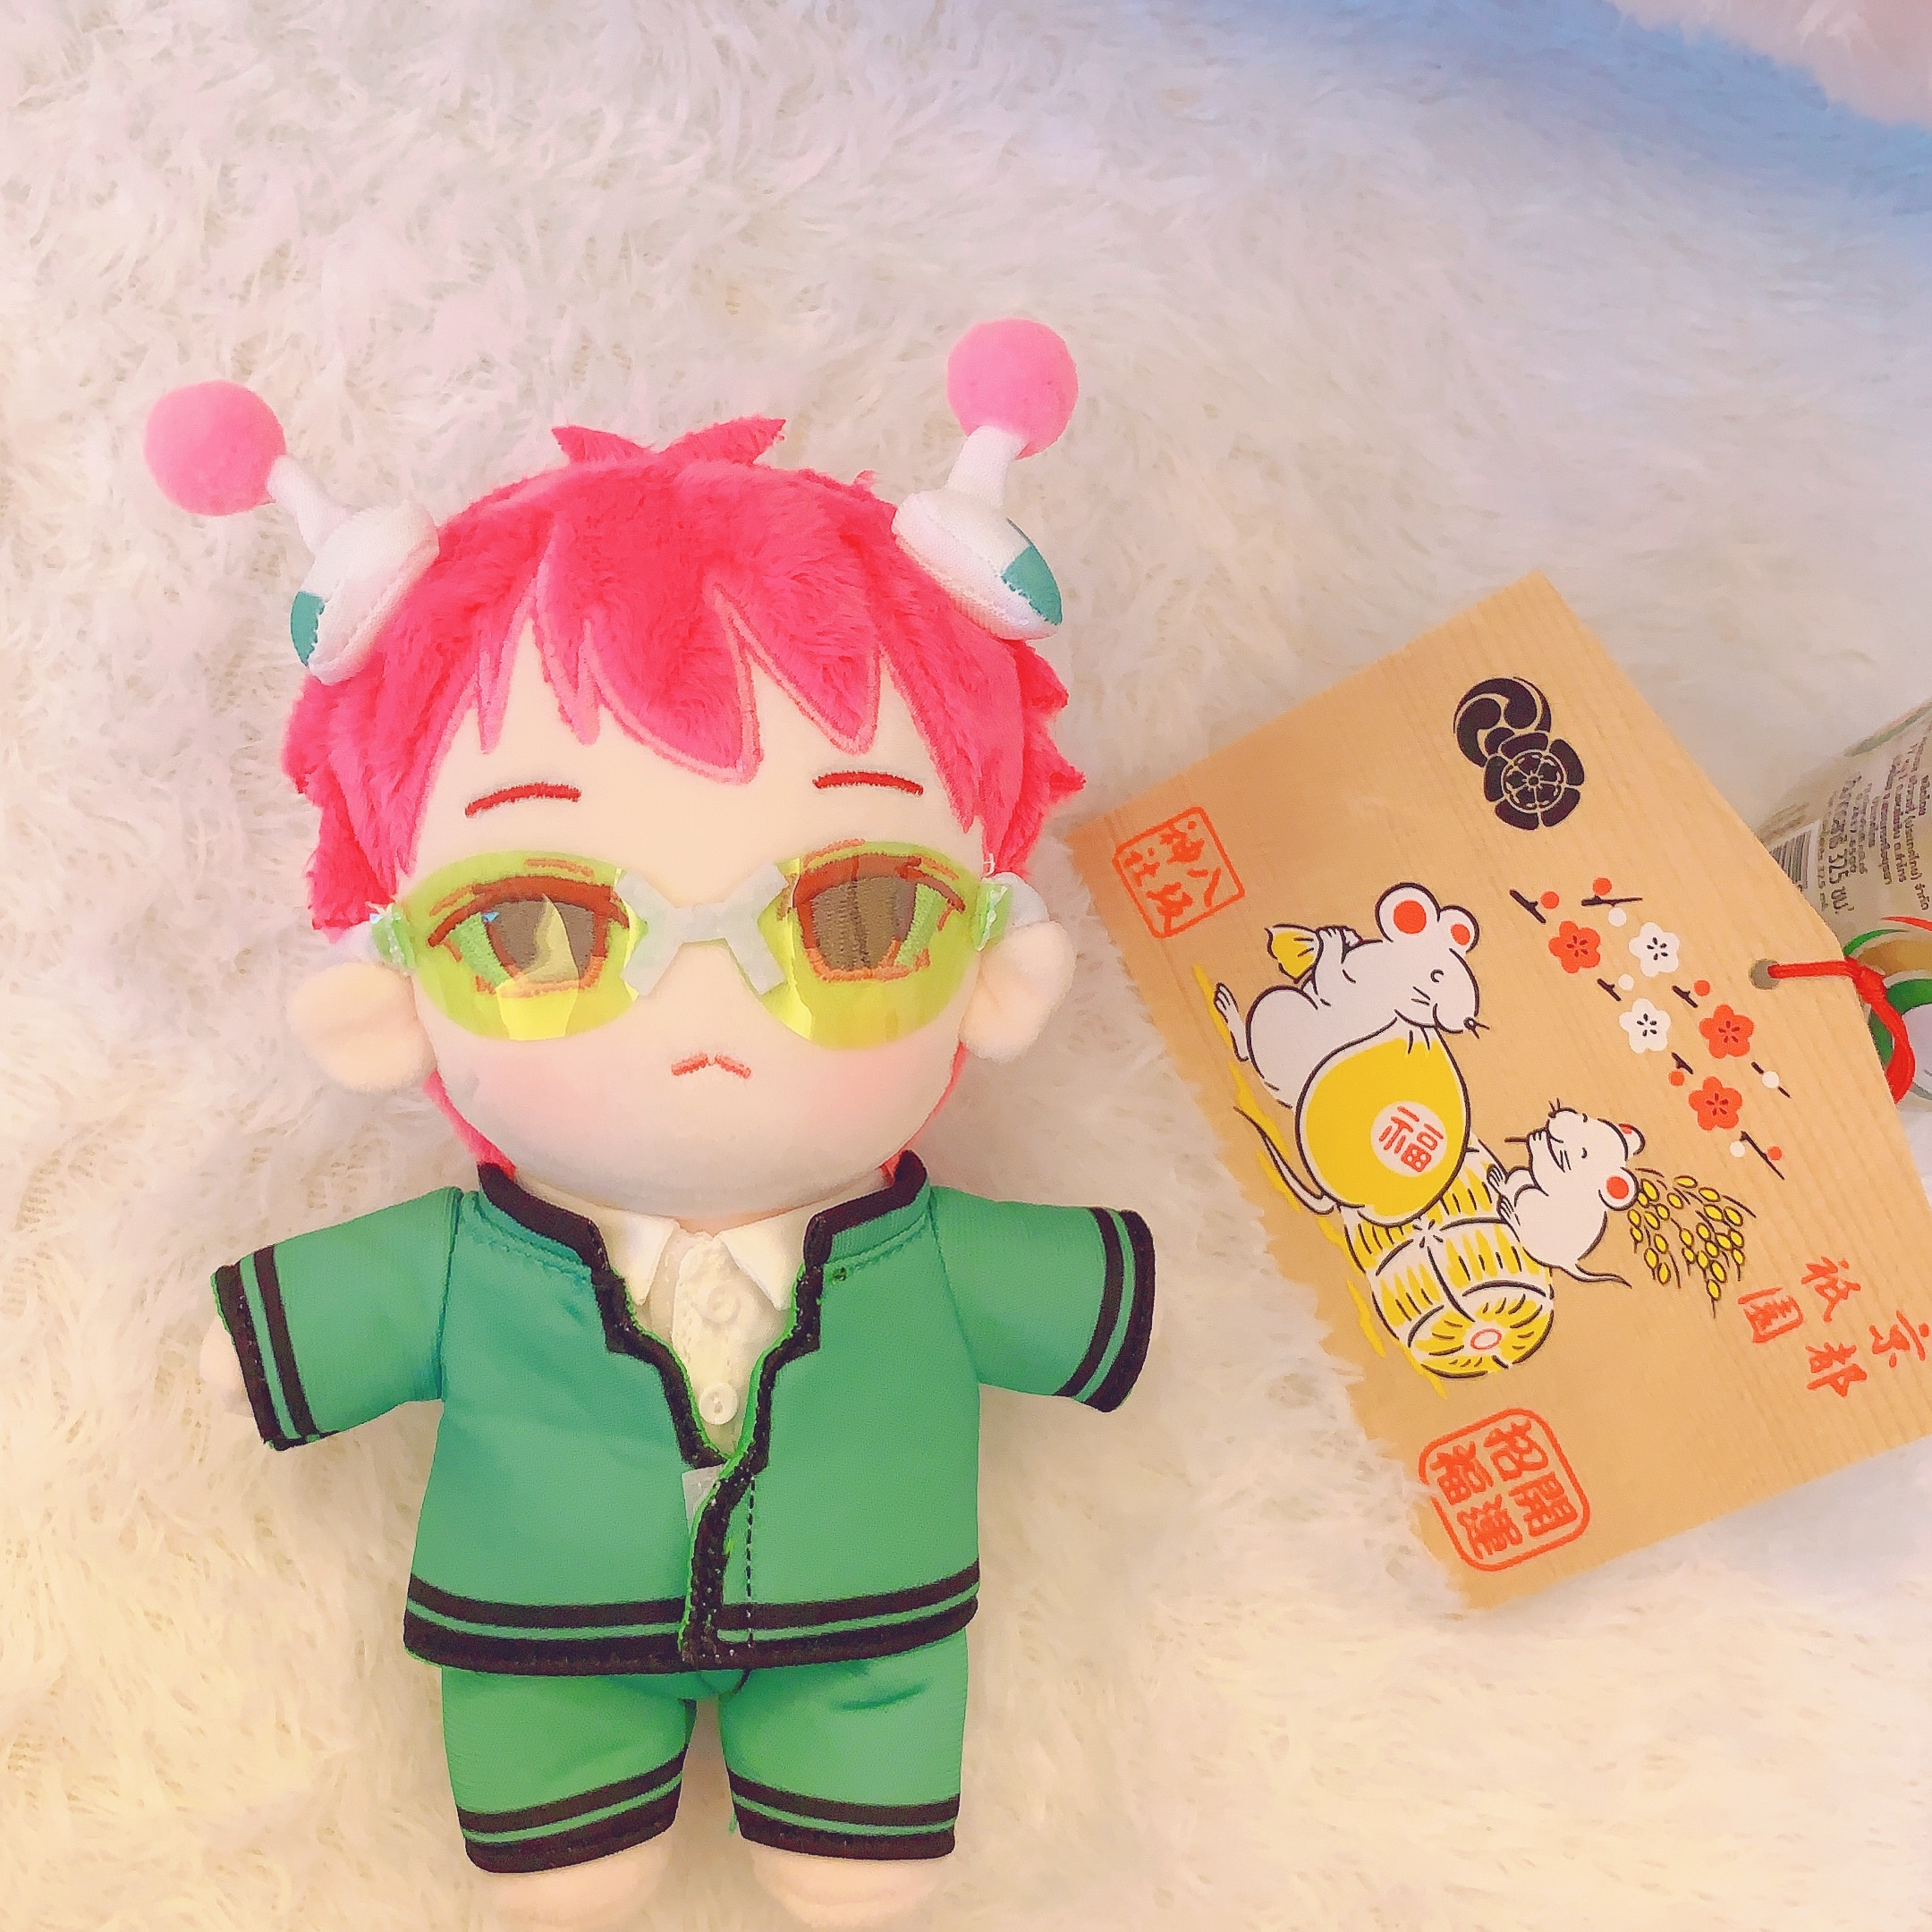 Anime The Disastrous Life of Saiki K. Saiki Kusuo Cosplay Cute Plush Stuffed Change Dolls Toy 20cm D